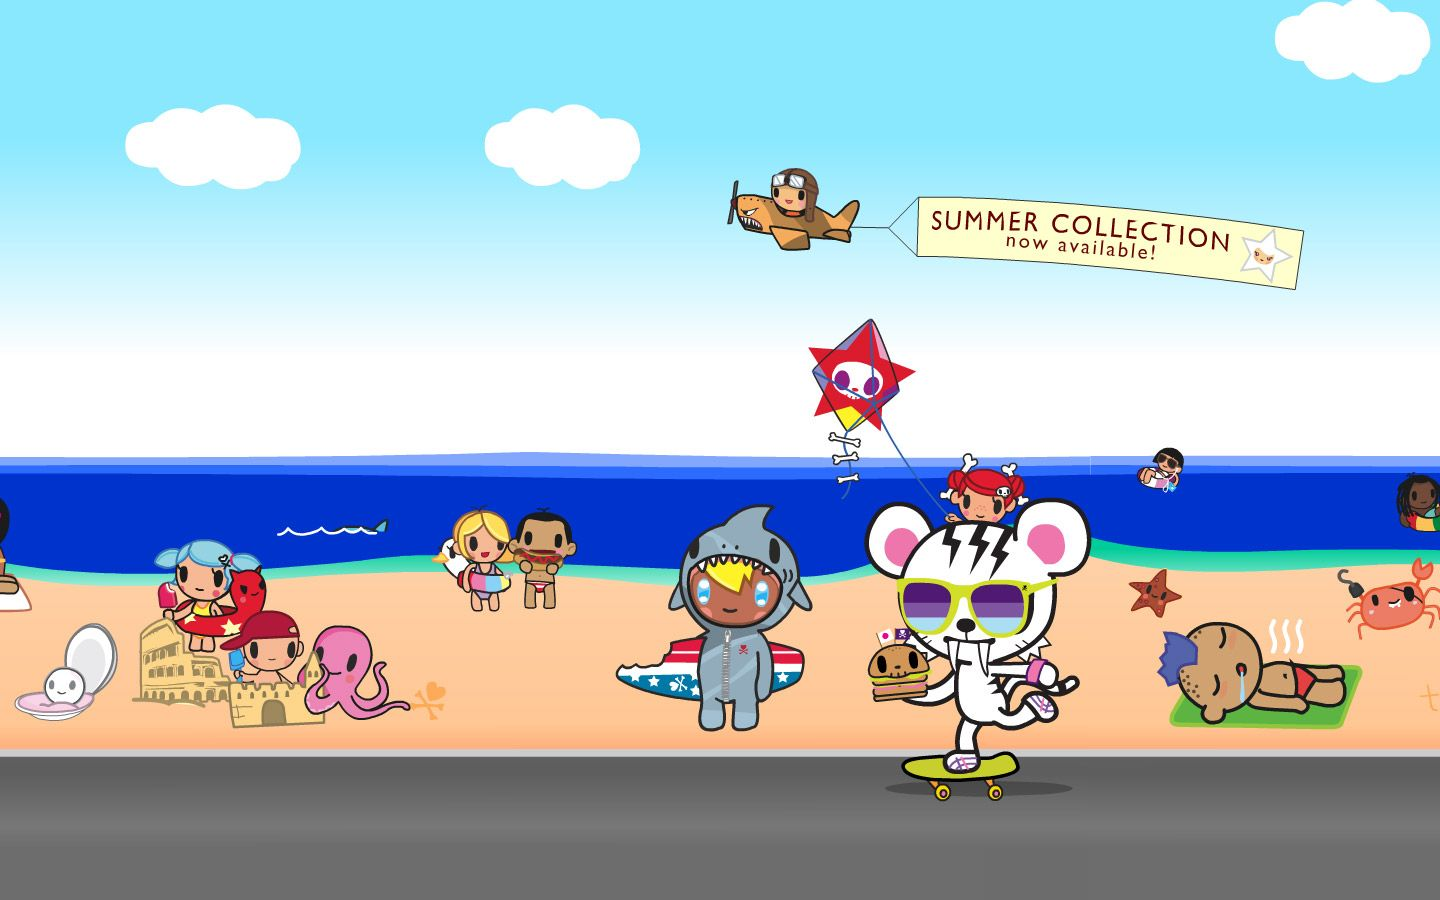 1440x900 Tokidoki Backgrounds | Tokidoki Characters | TokiDoki | Pinterest ...